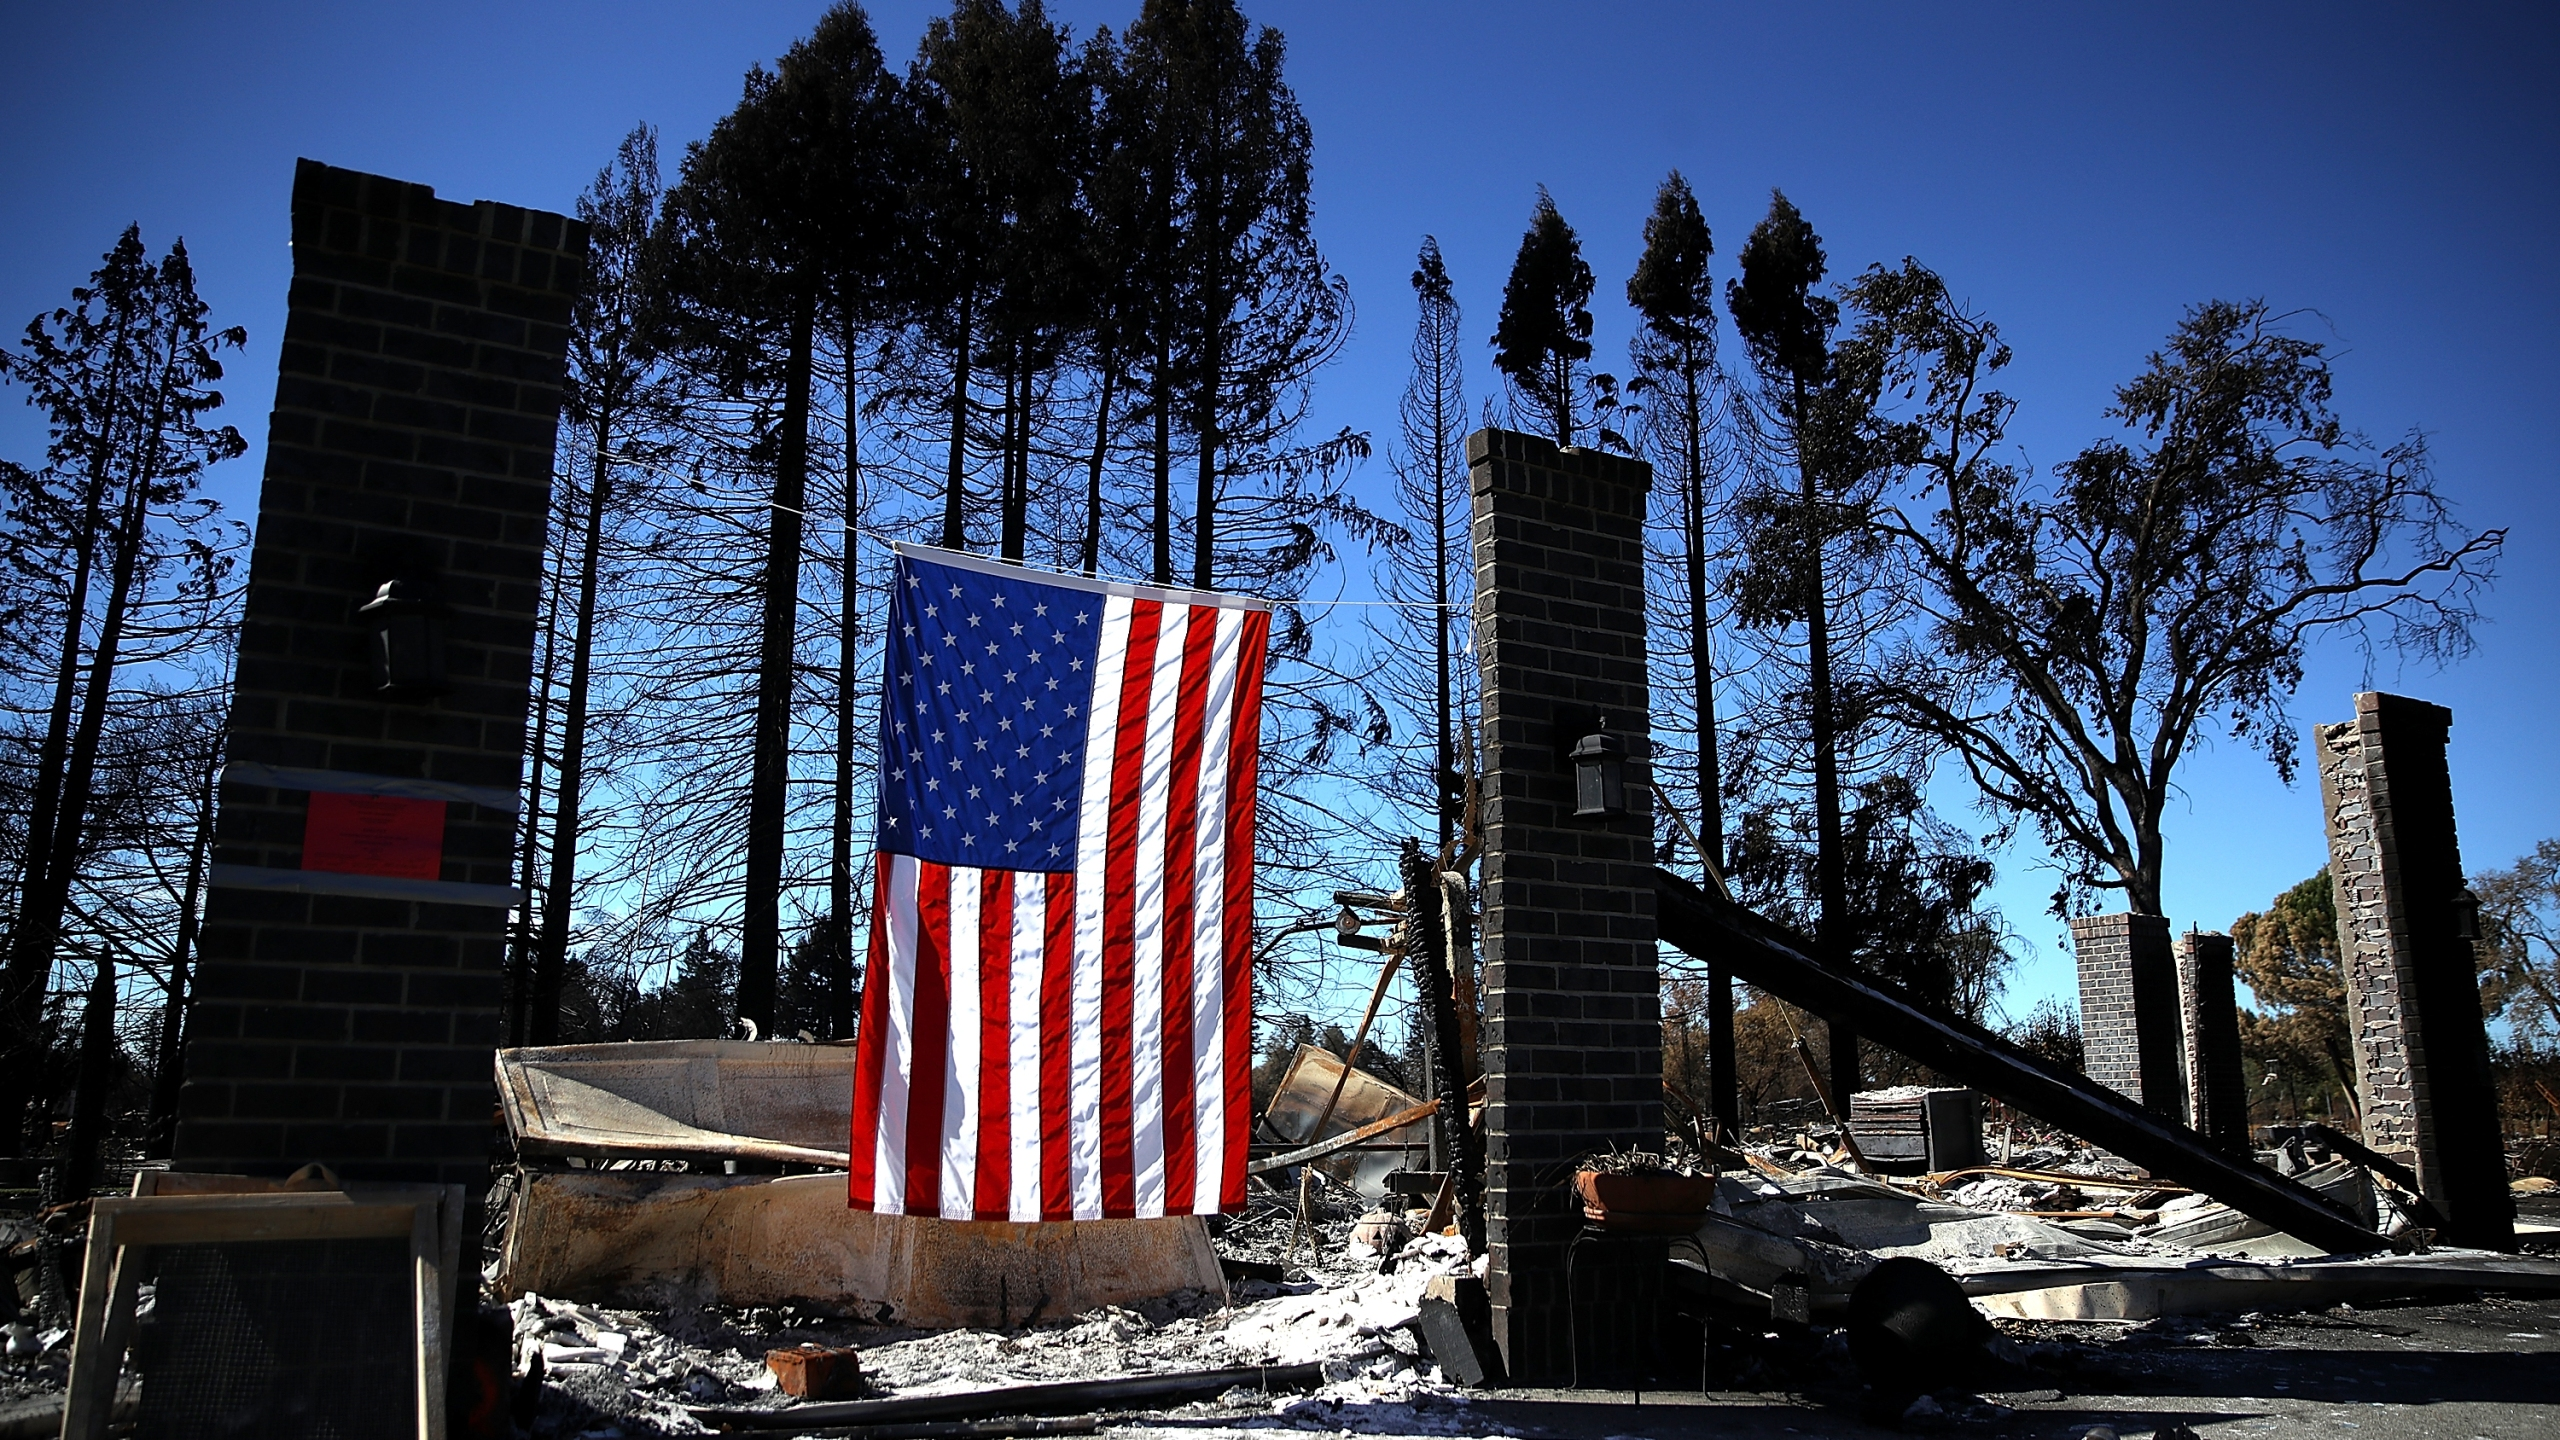 An American flag hangs in front of a home in the Coffey Park neighborhood that was destroyed by the Tubbs Fire on Oct. 23, 2017, in Santa Rosa. (Credit: Justin Sullivan/Getty Images)